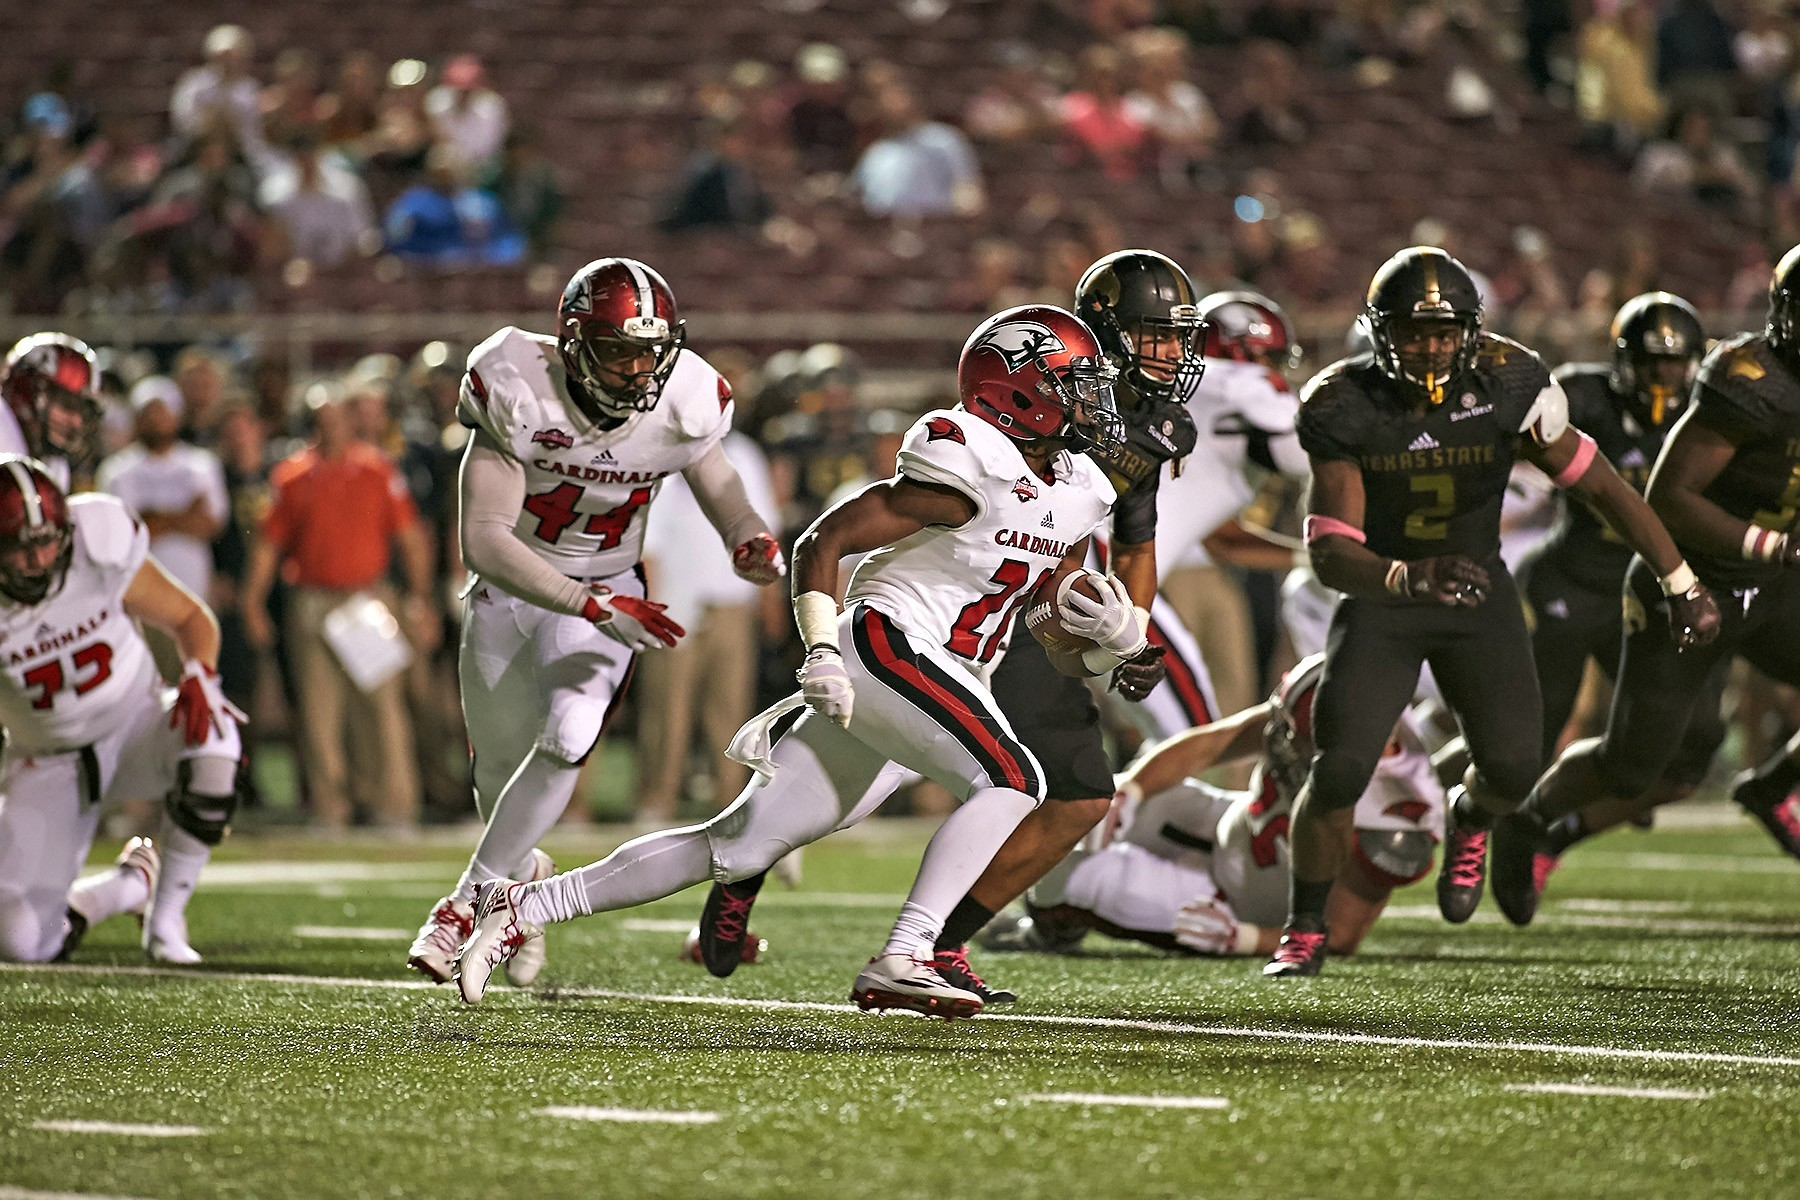 UIW Upended by Texas State, 48-17